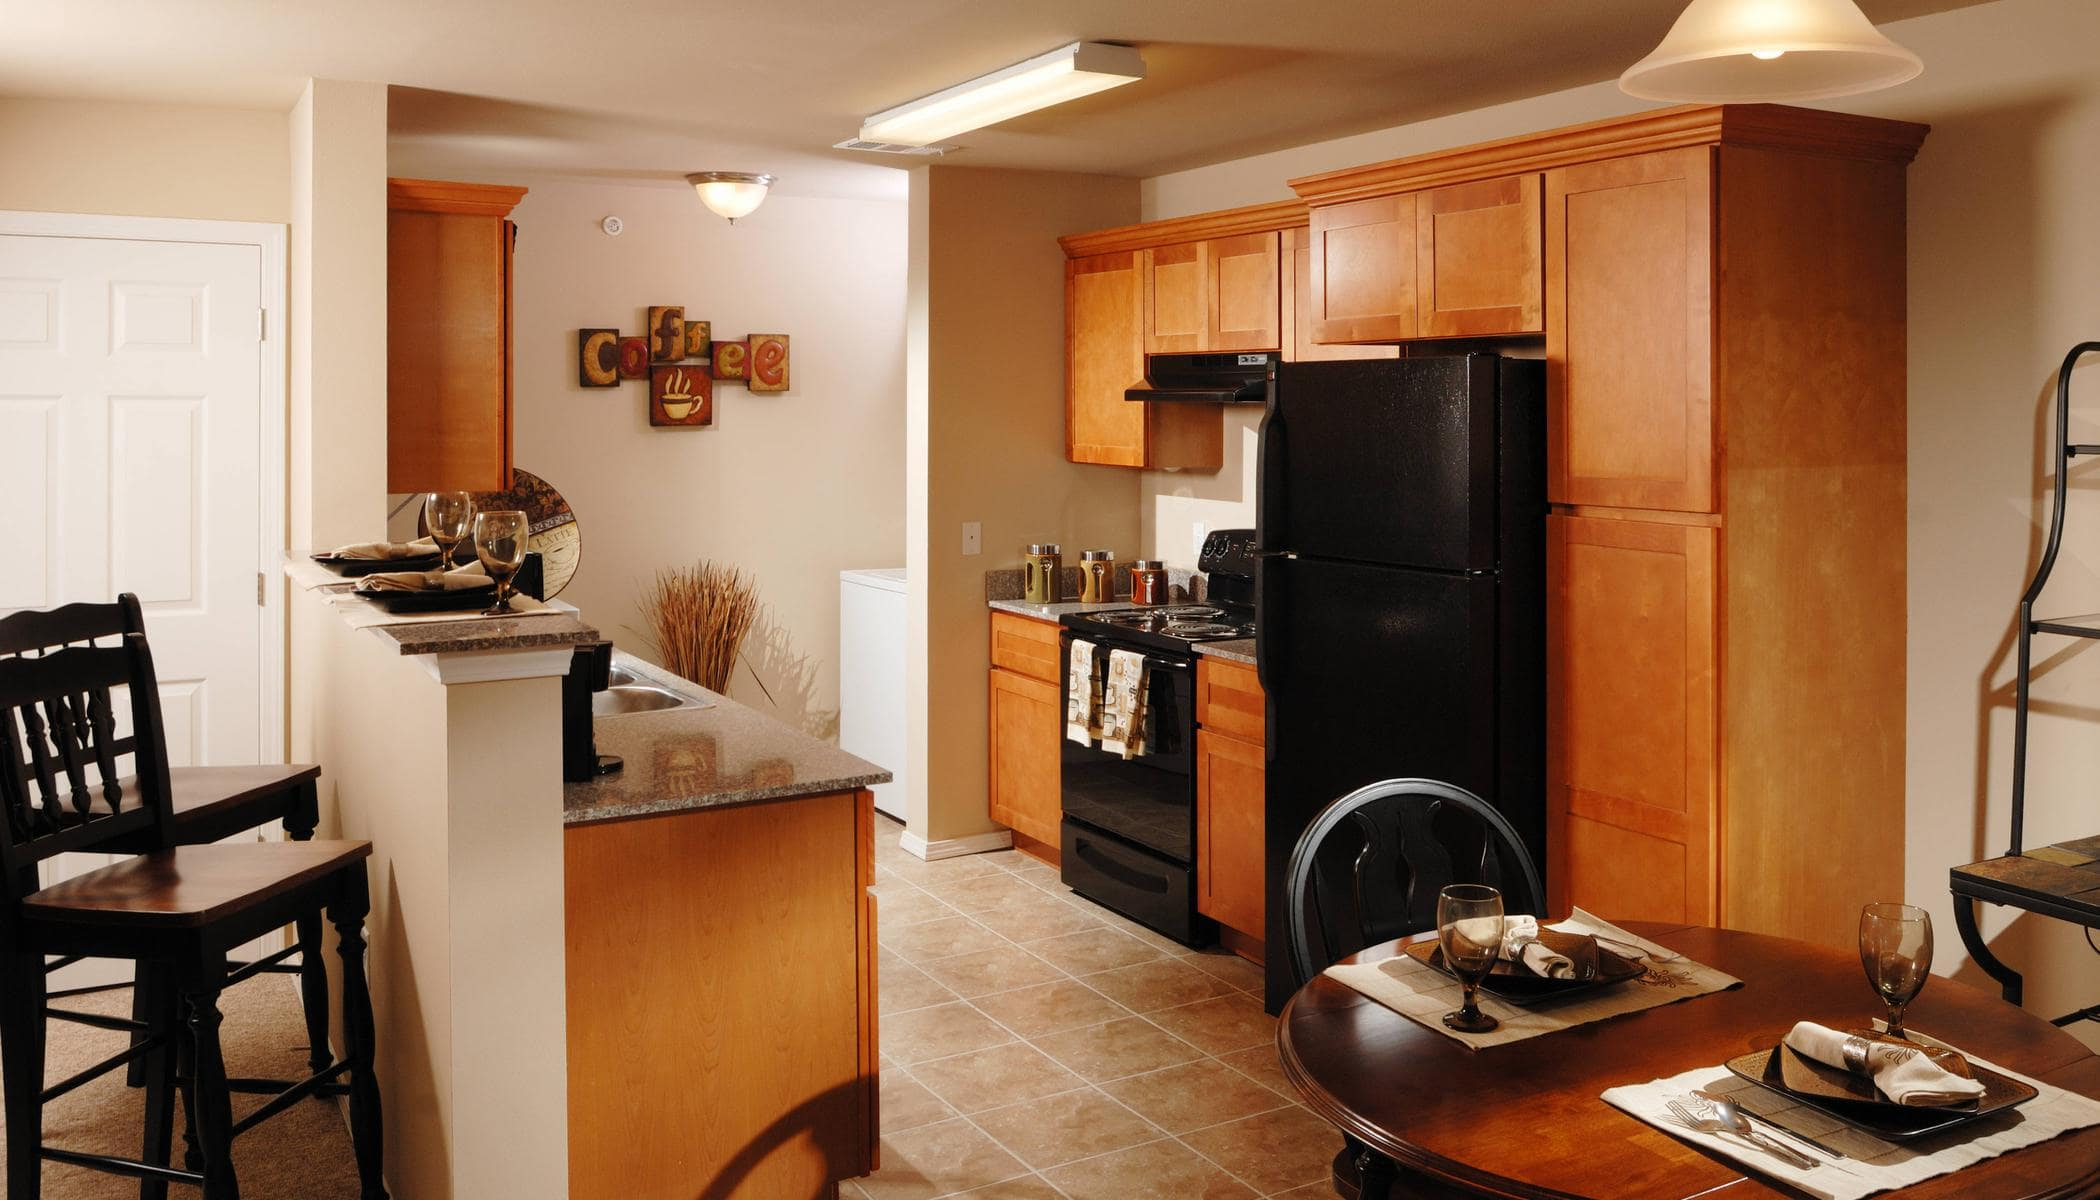 High end kitchen with breakfast bar at Bee Creek Apartments